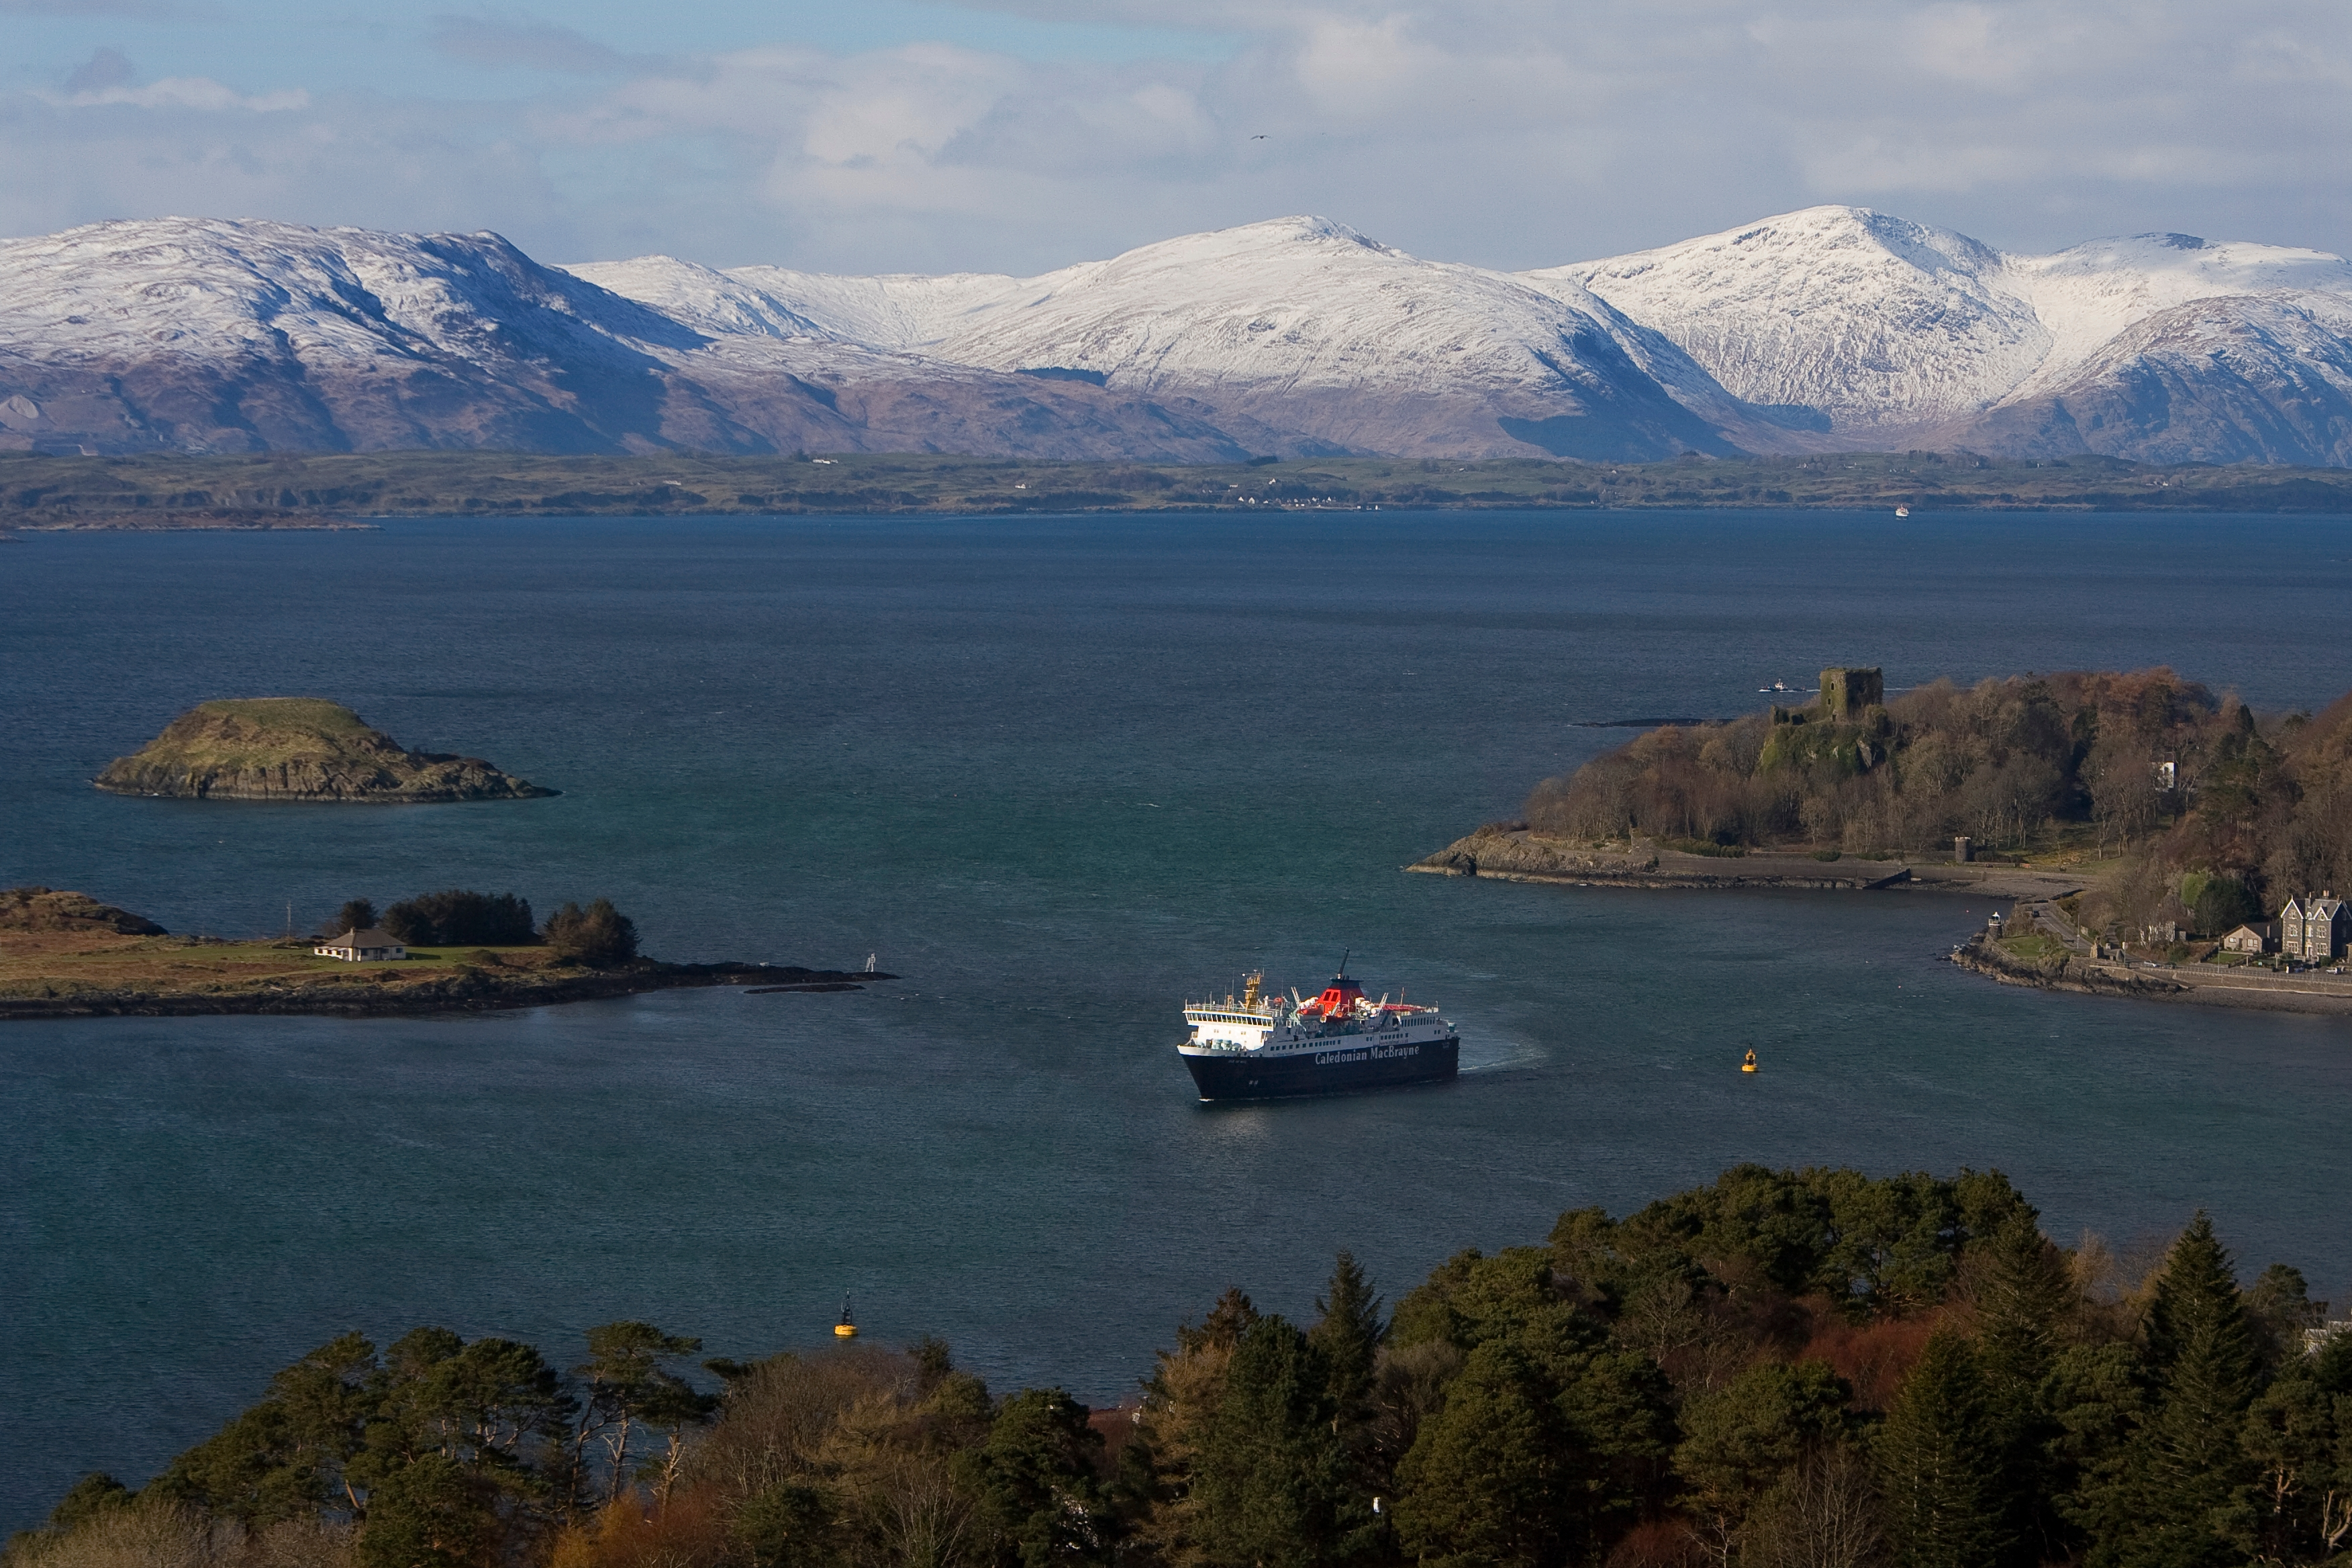 MV Isle of Mull with Dunollie and Morvern Hills